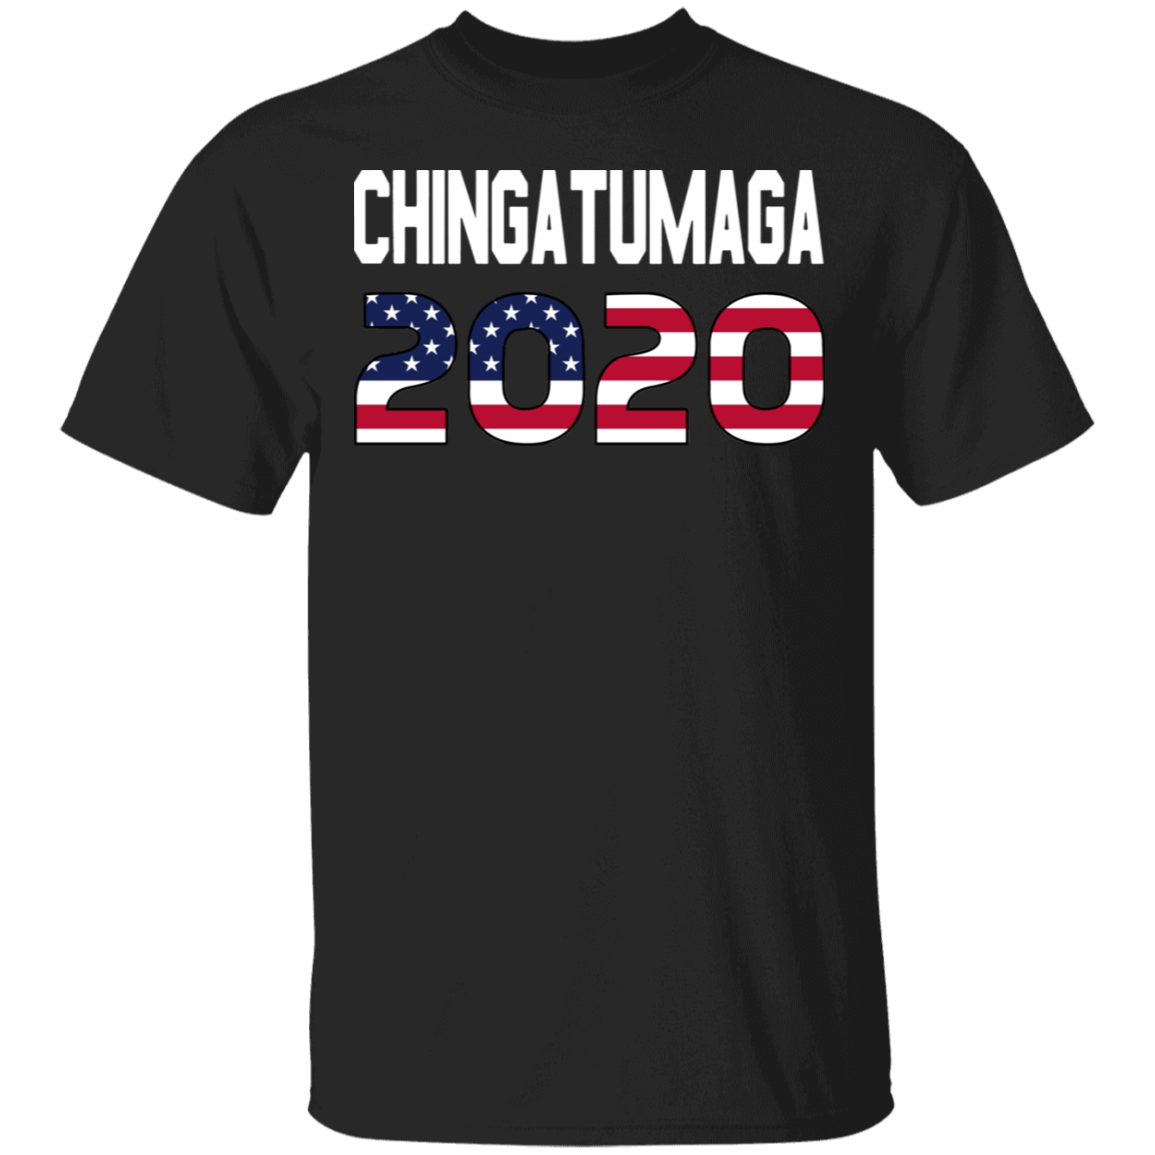 Chingatumaga 2020 Shirt Funny Political T-Shirt Anti Trump Clothing Vote Dump Trump